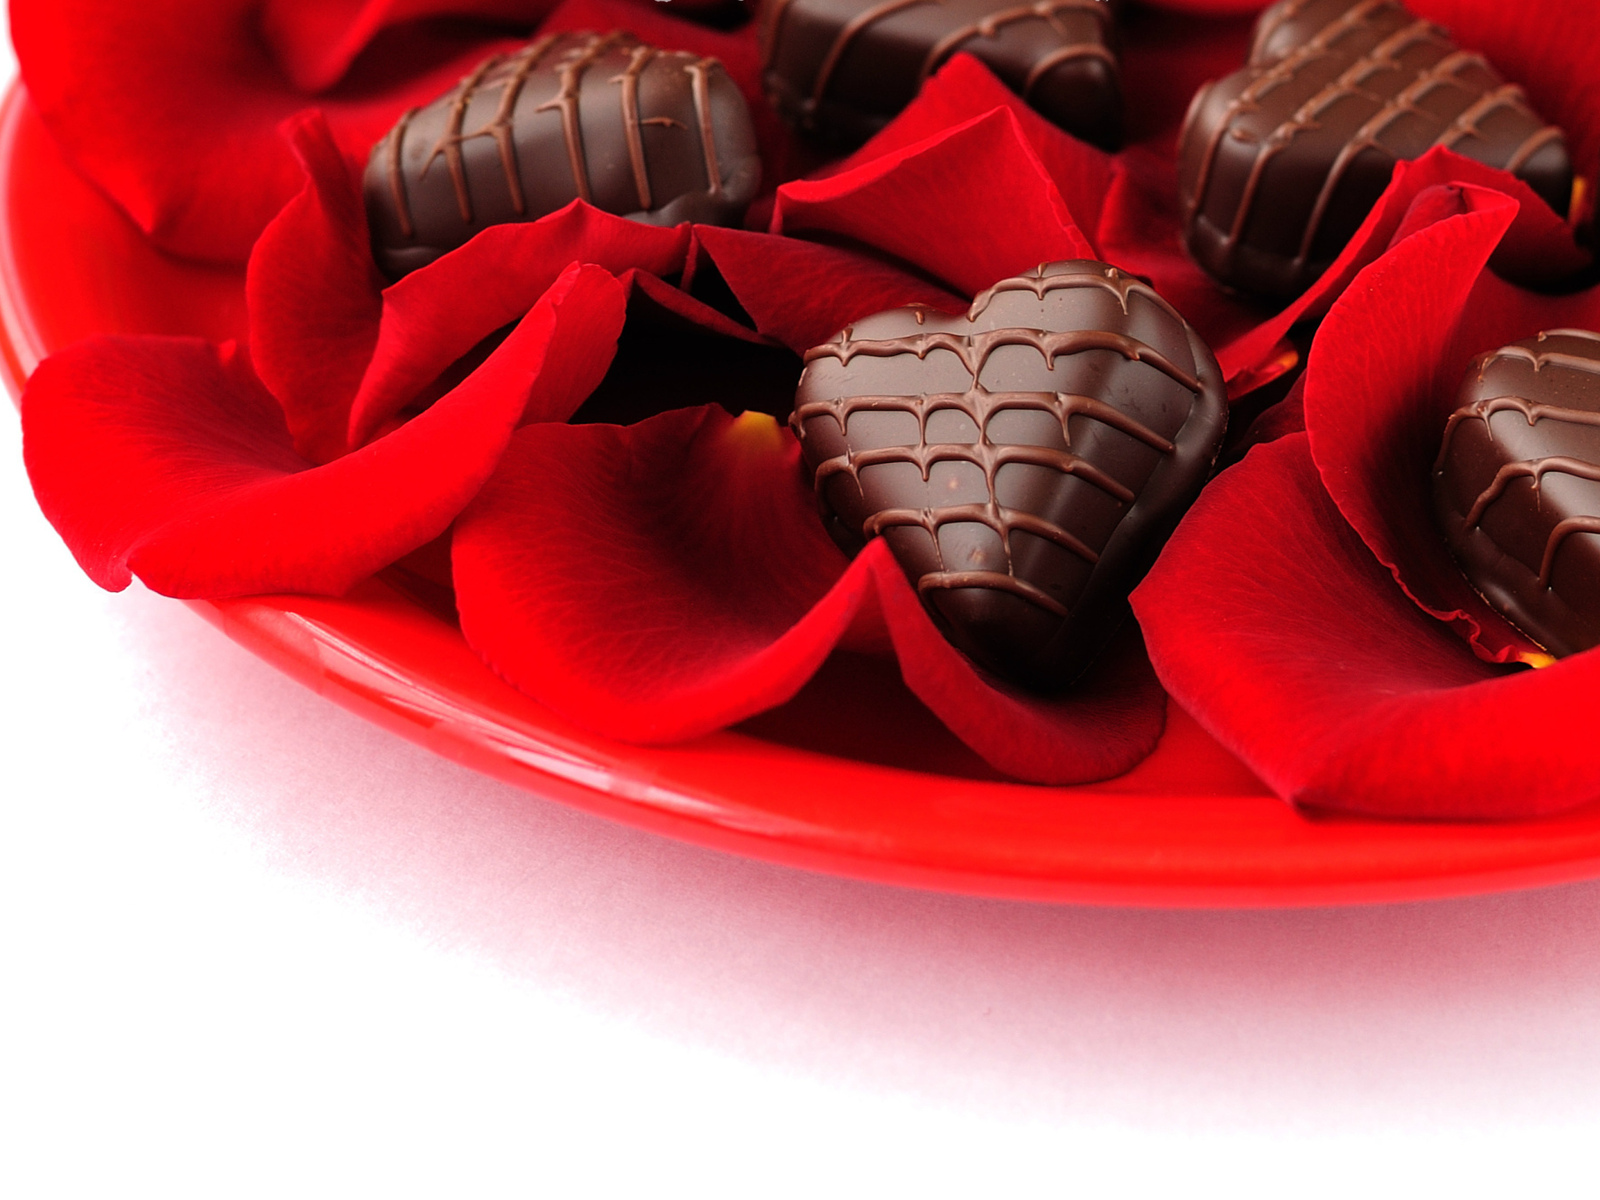 heart, holiday, chocolate, roses, конфеты, hearts, love, candy, розы, шоколад